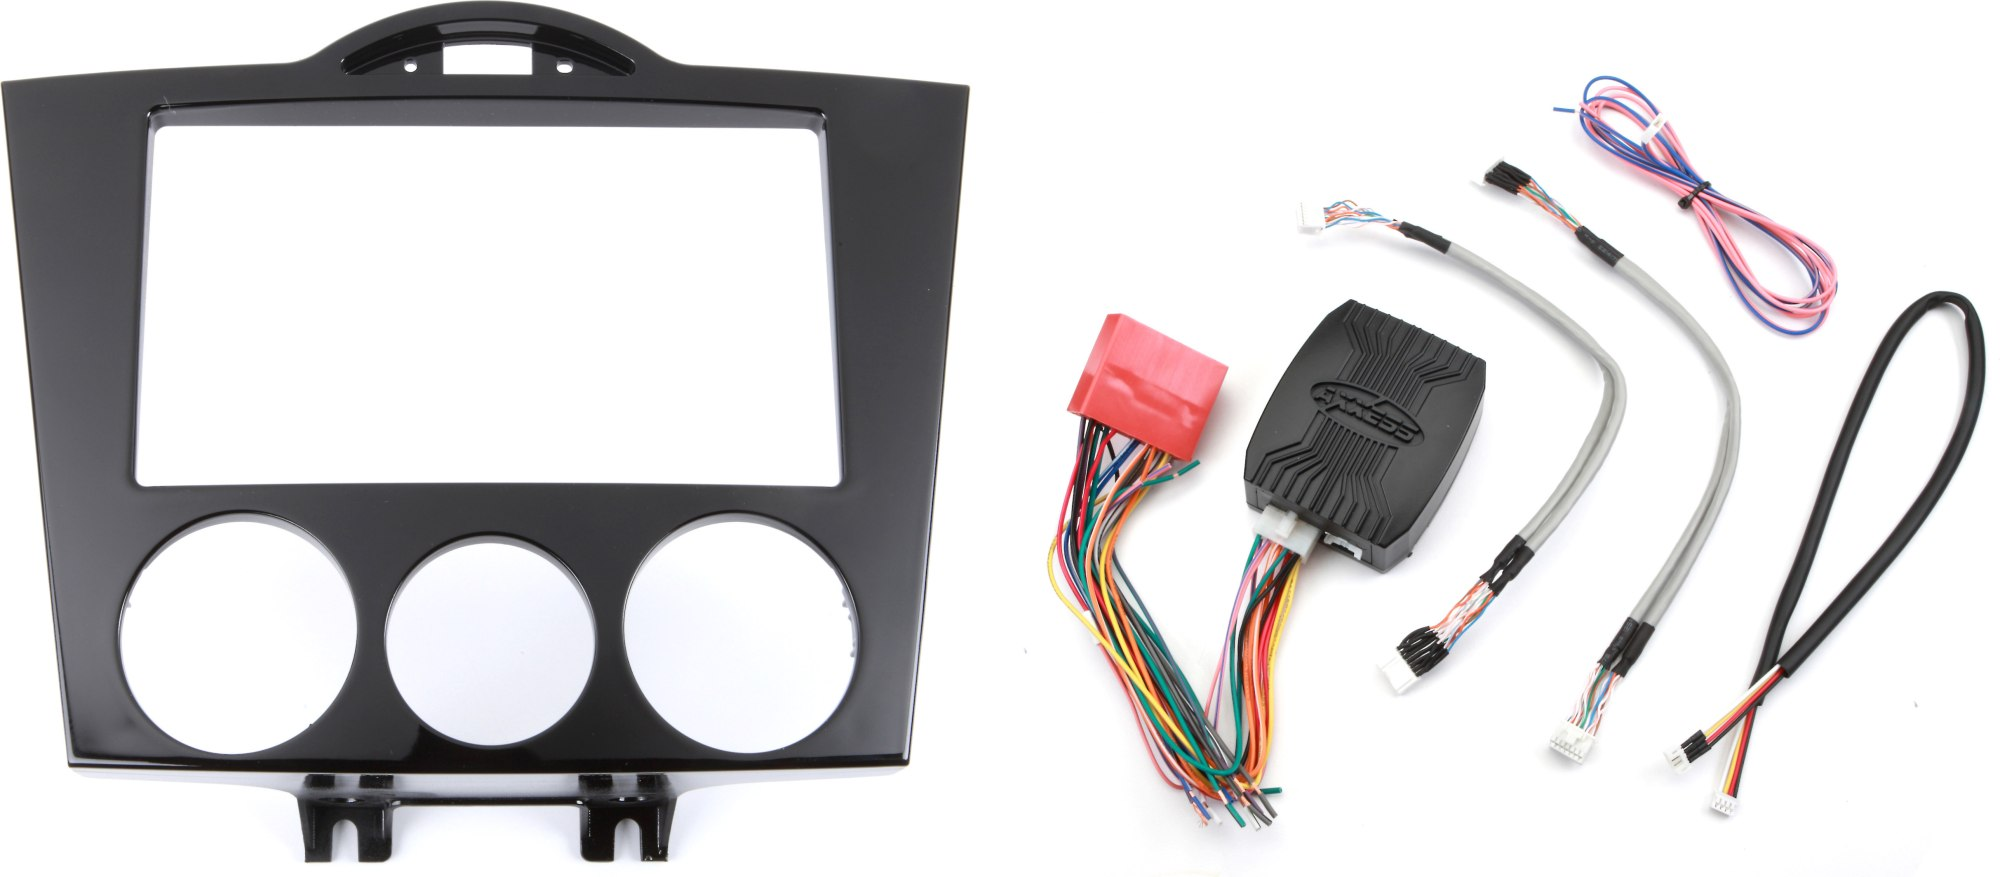 hight resolution of metra 95 7510 dash and wiring kit gloss black install and connect a new double din car stereo in a 2004 08 mazda rx 8 at crutchfield